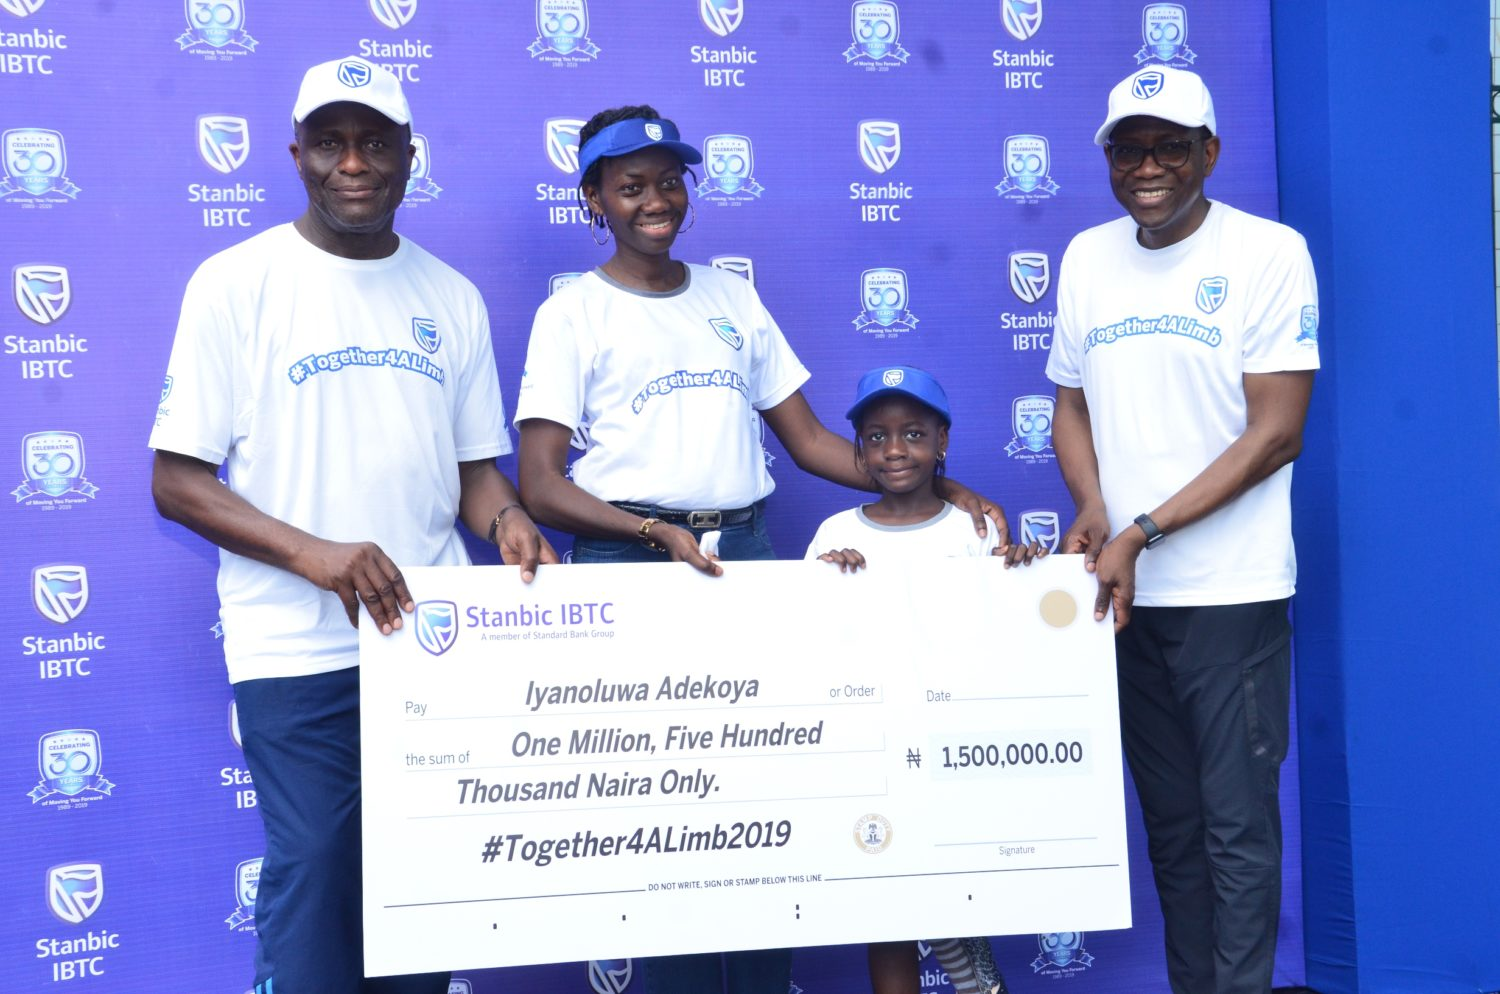 L-R: Dr. Adeyemi Omobowale, Chief Executive Officer, Reddington Hospital Group; Mrs. Ruth Adekoya, mother of the beneficiary; Iyanuoluwa Adekoya, Together4ALimb 2019 beneficiary and Yinka Sanni, Chief Executive, Stanbic IBTC Holdings PLC; during the presentation of EduTrust funds to beneficiaries at the 2019 edition of the Together4alimb Walk, organized by Stanbic IBTC Holdings.